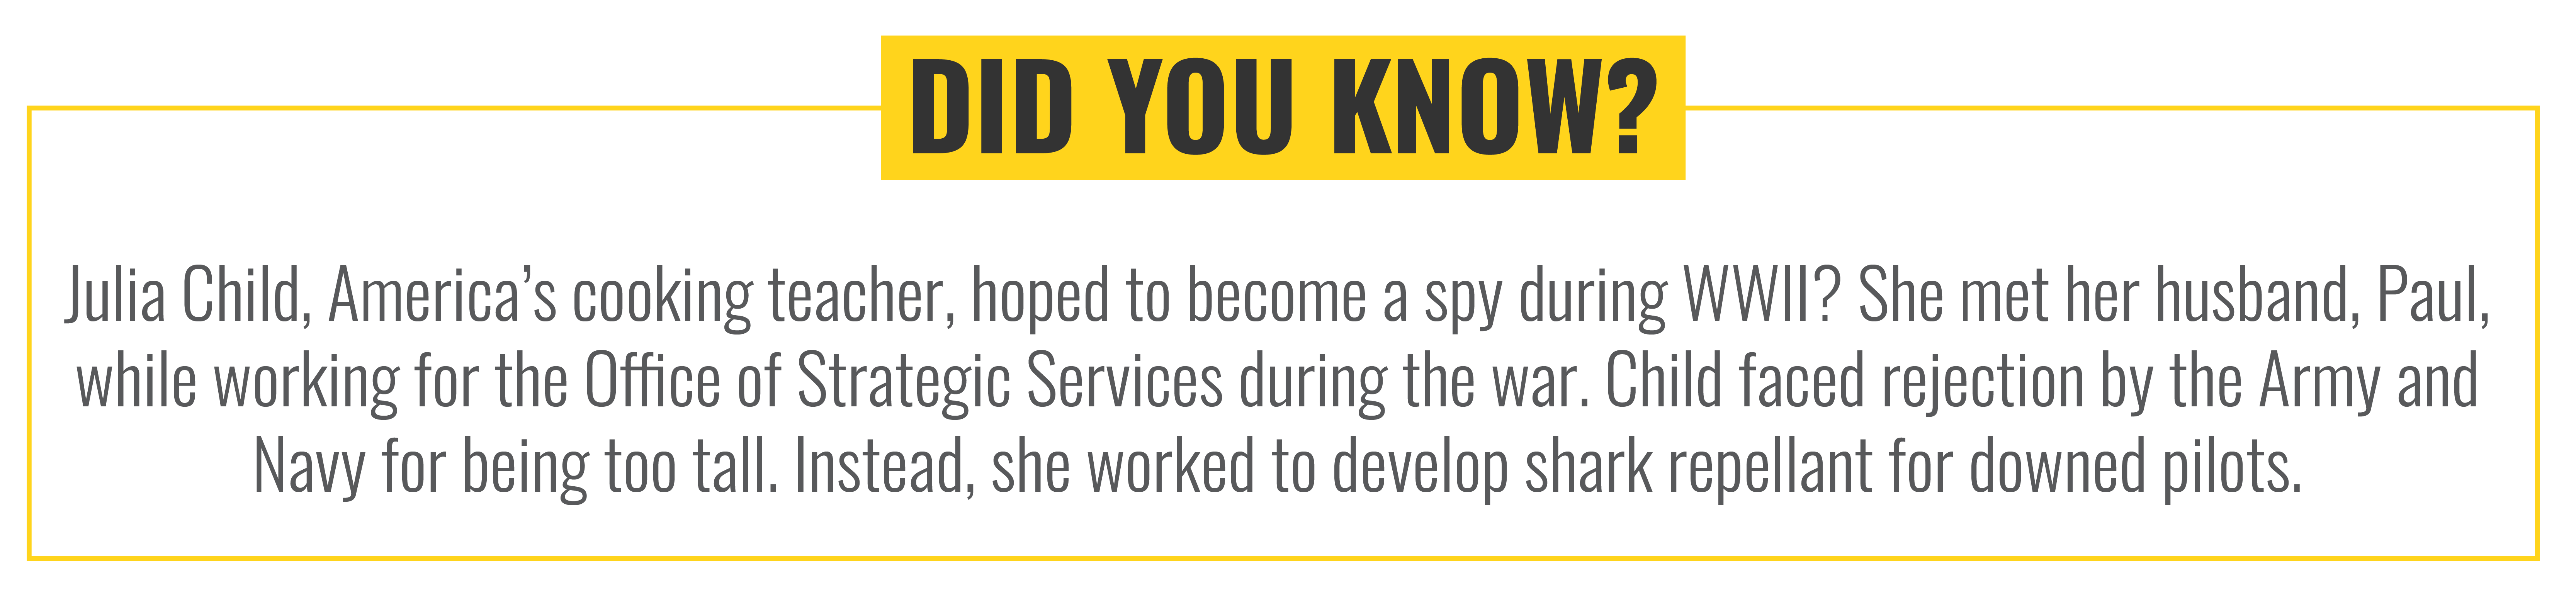 Did you know? Julia Child, America's cooking teacher, hoped to become a spy during WWII?